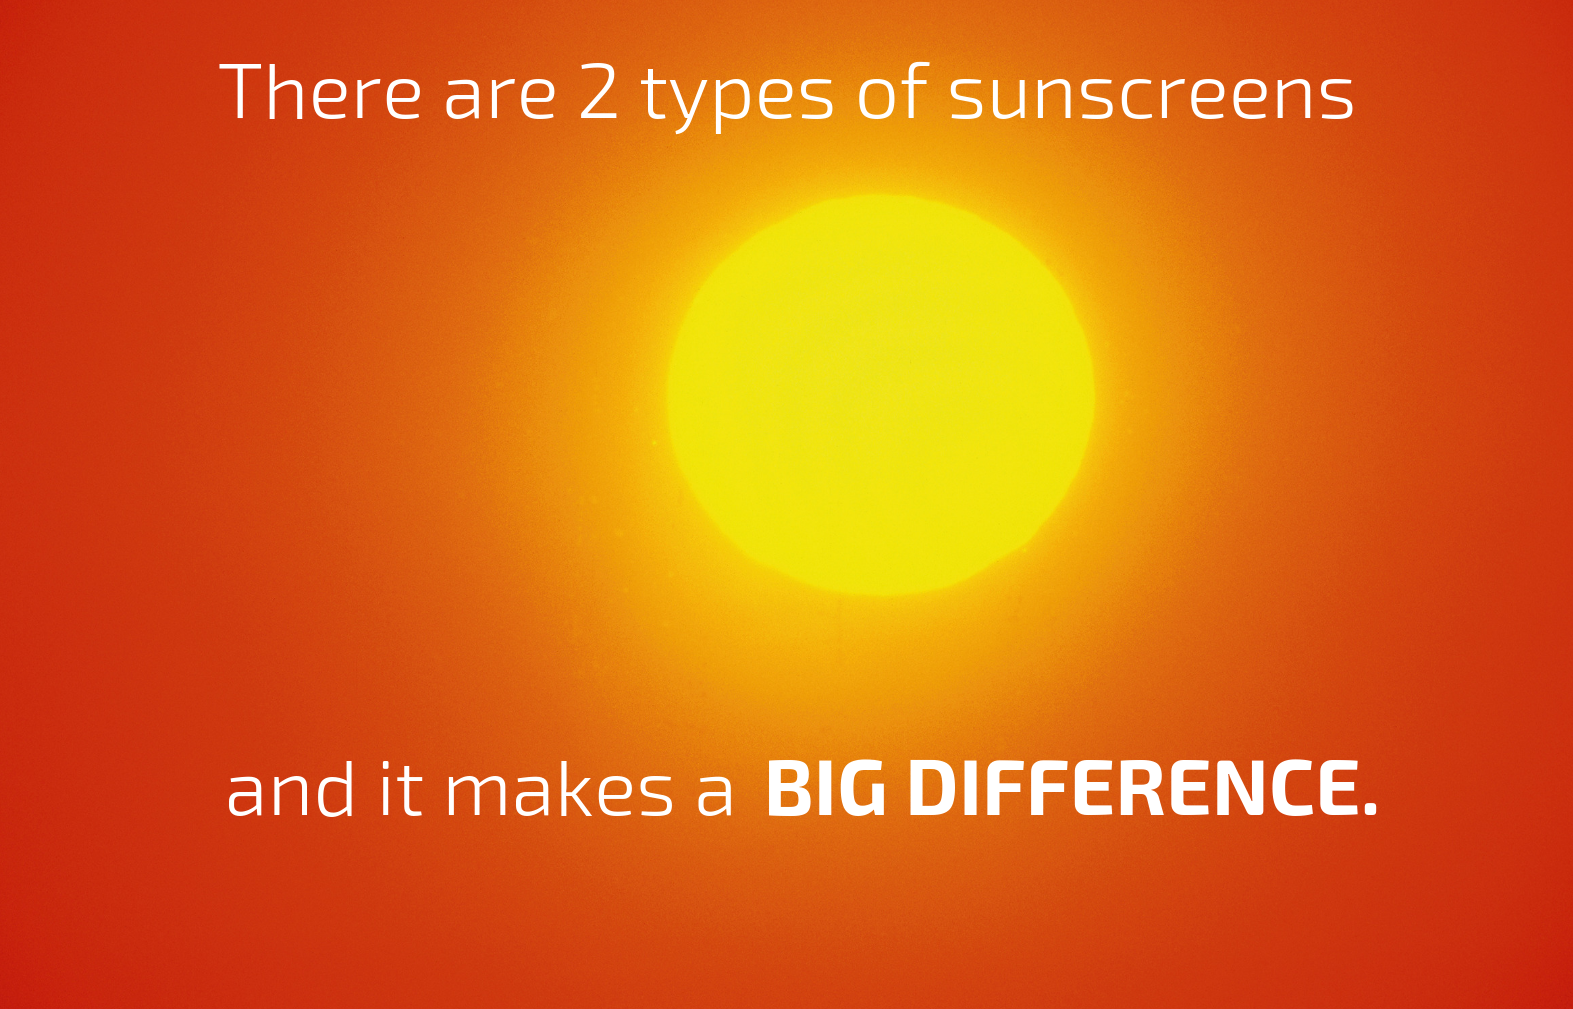 IS YOUR SUNSCREEN SAFE-2 types of sunscreens-big difference.png